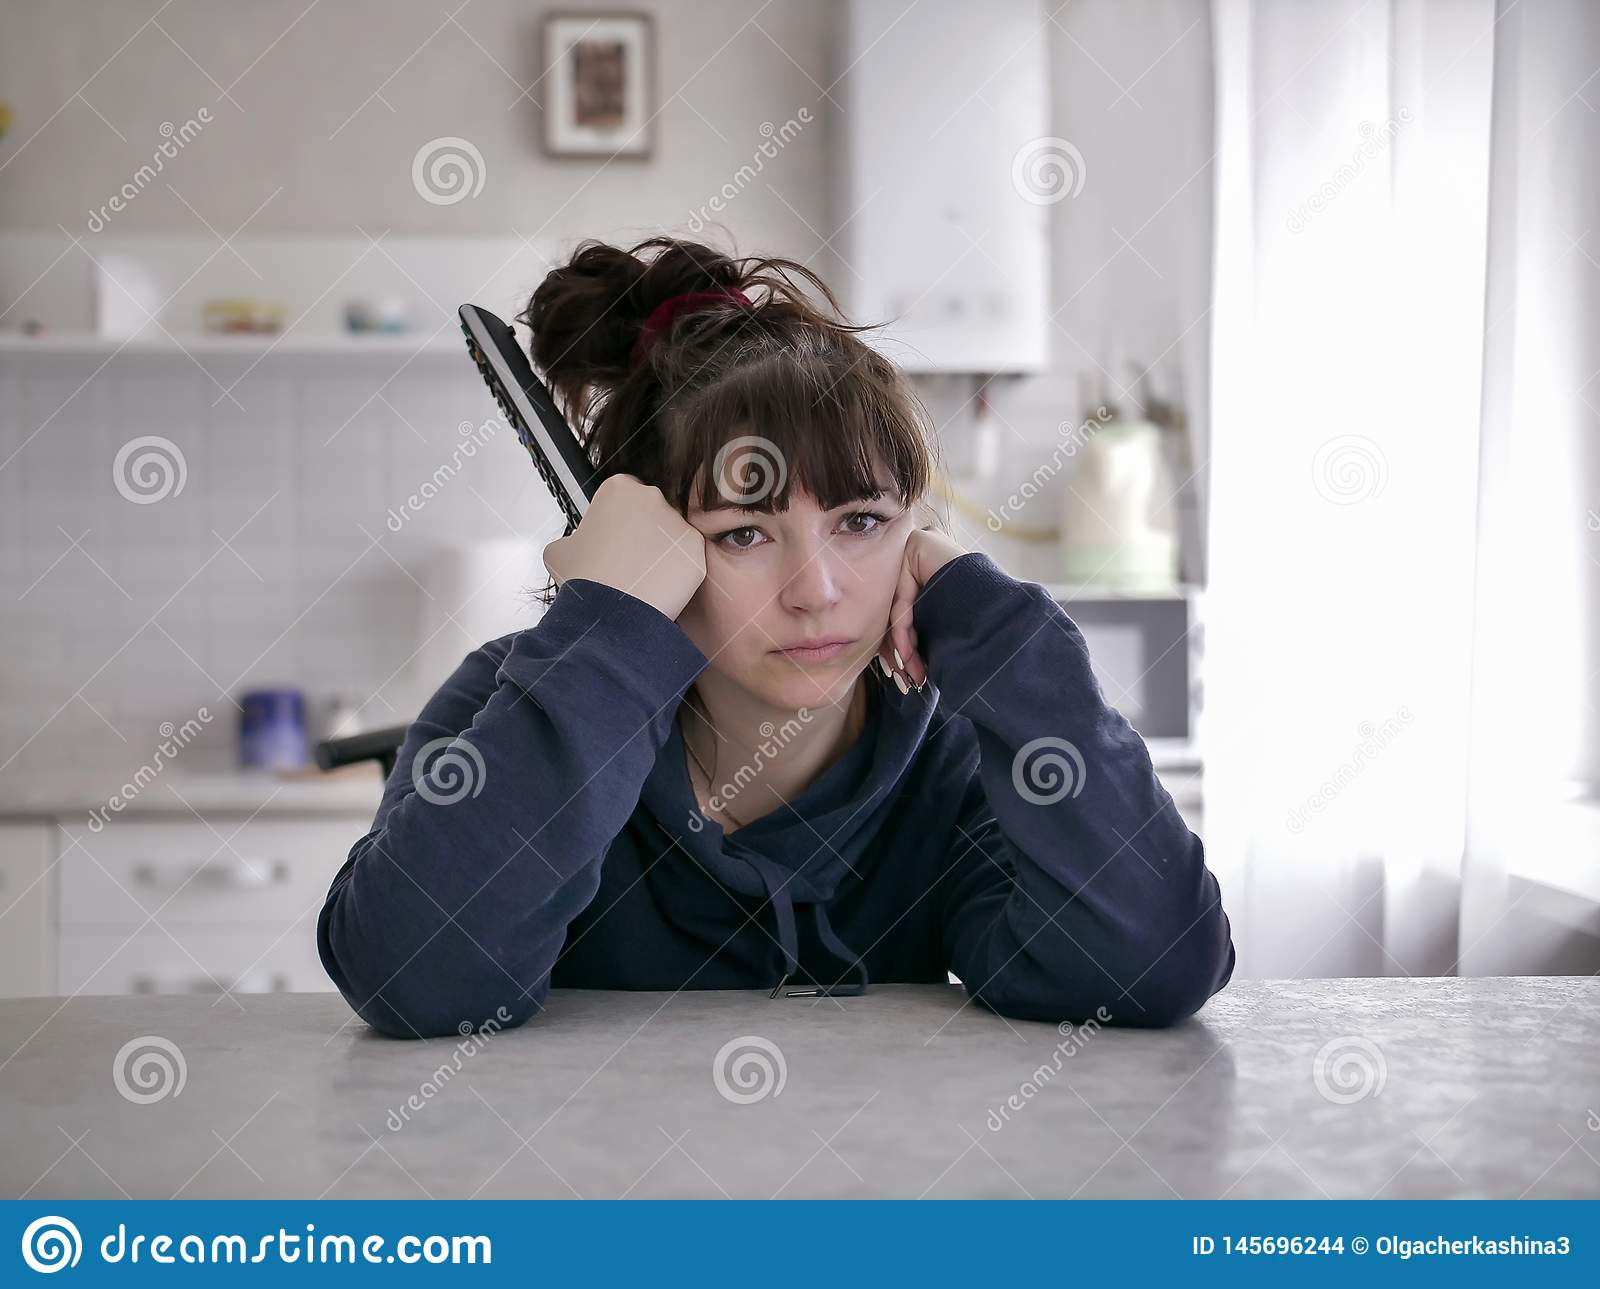 Bored woman sitting with remote control on a blurred background of the kitchen